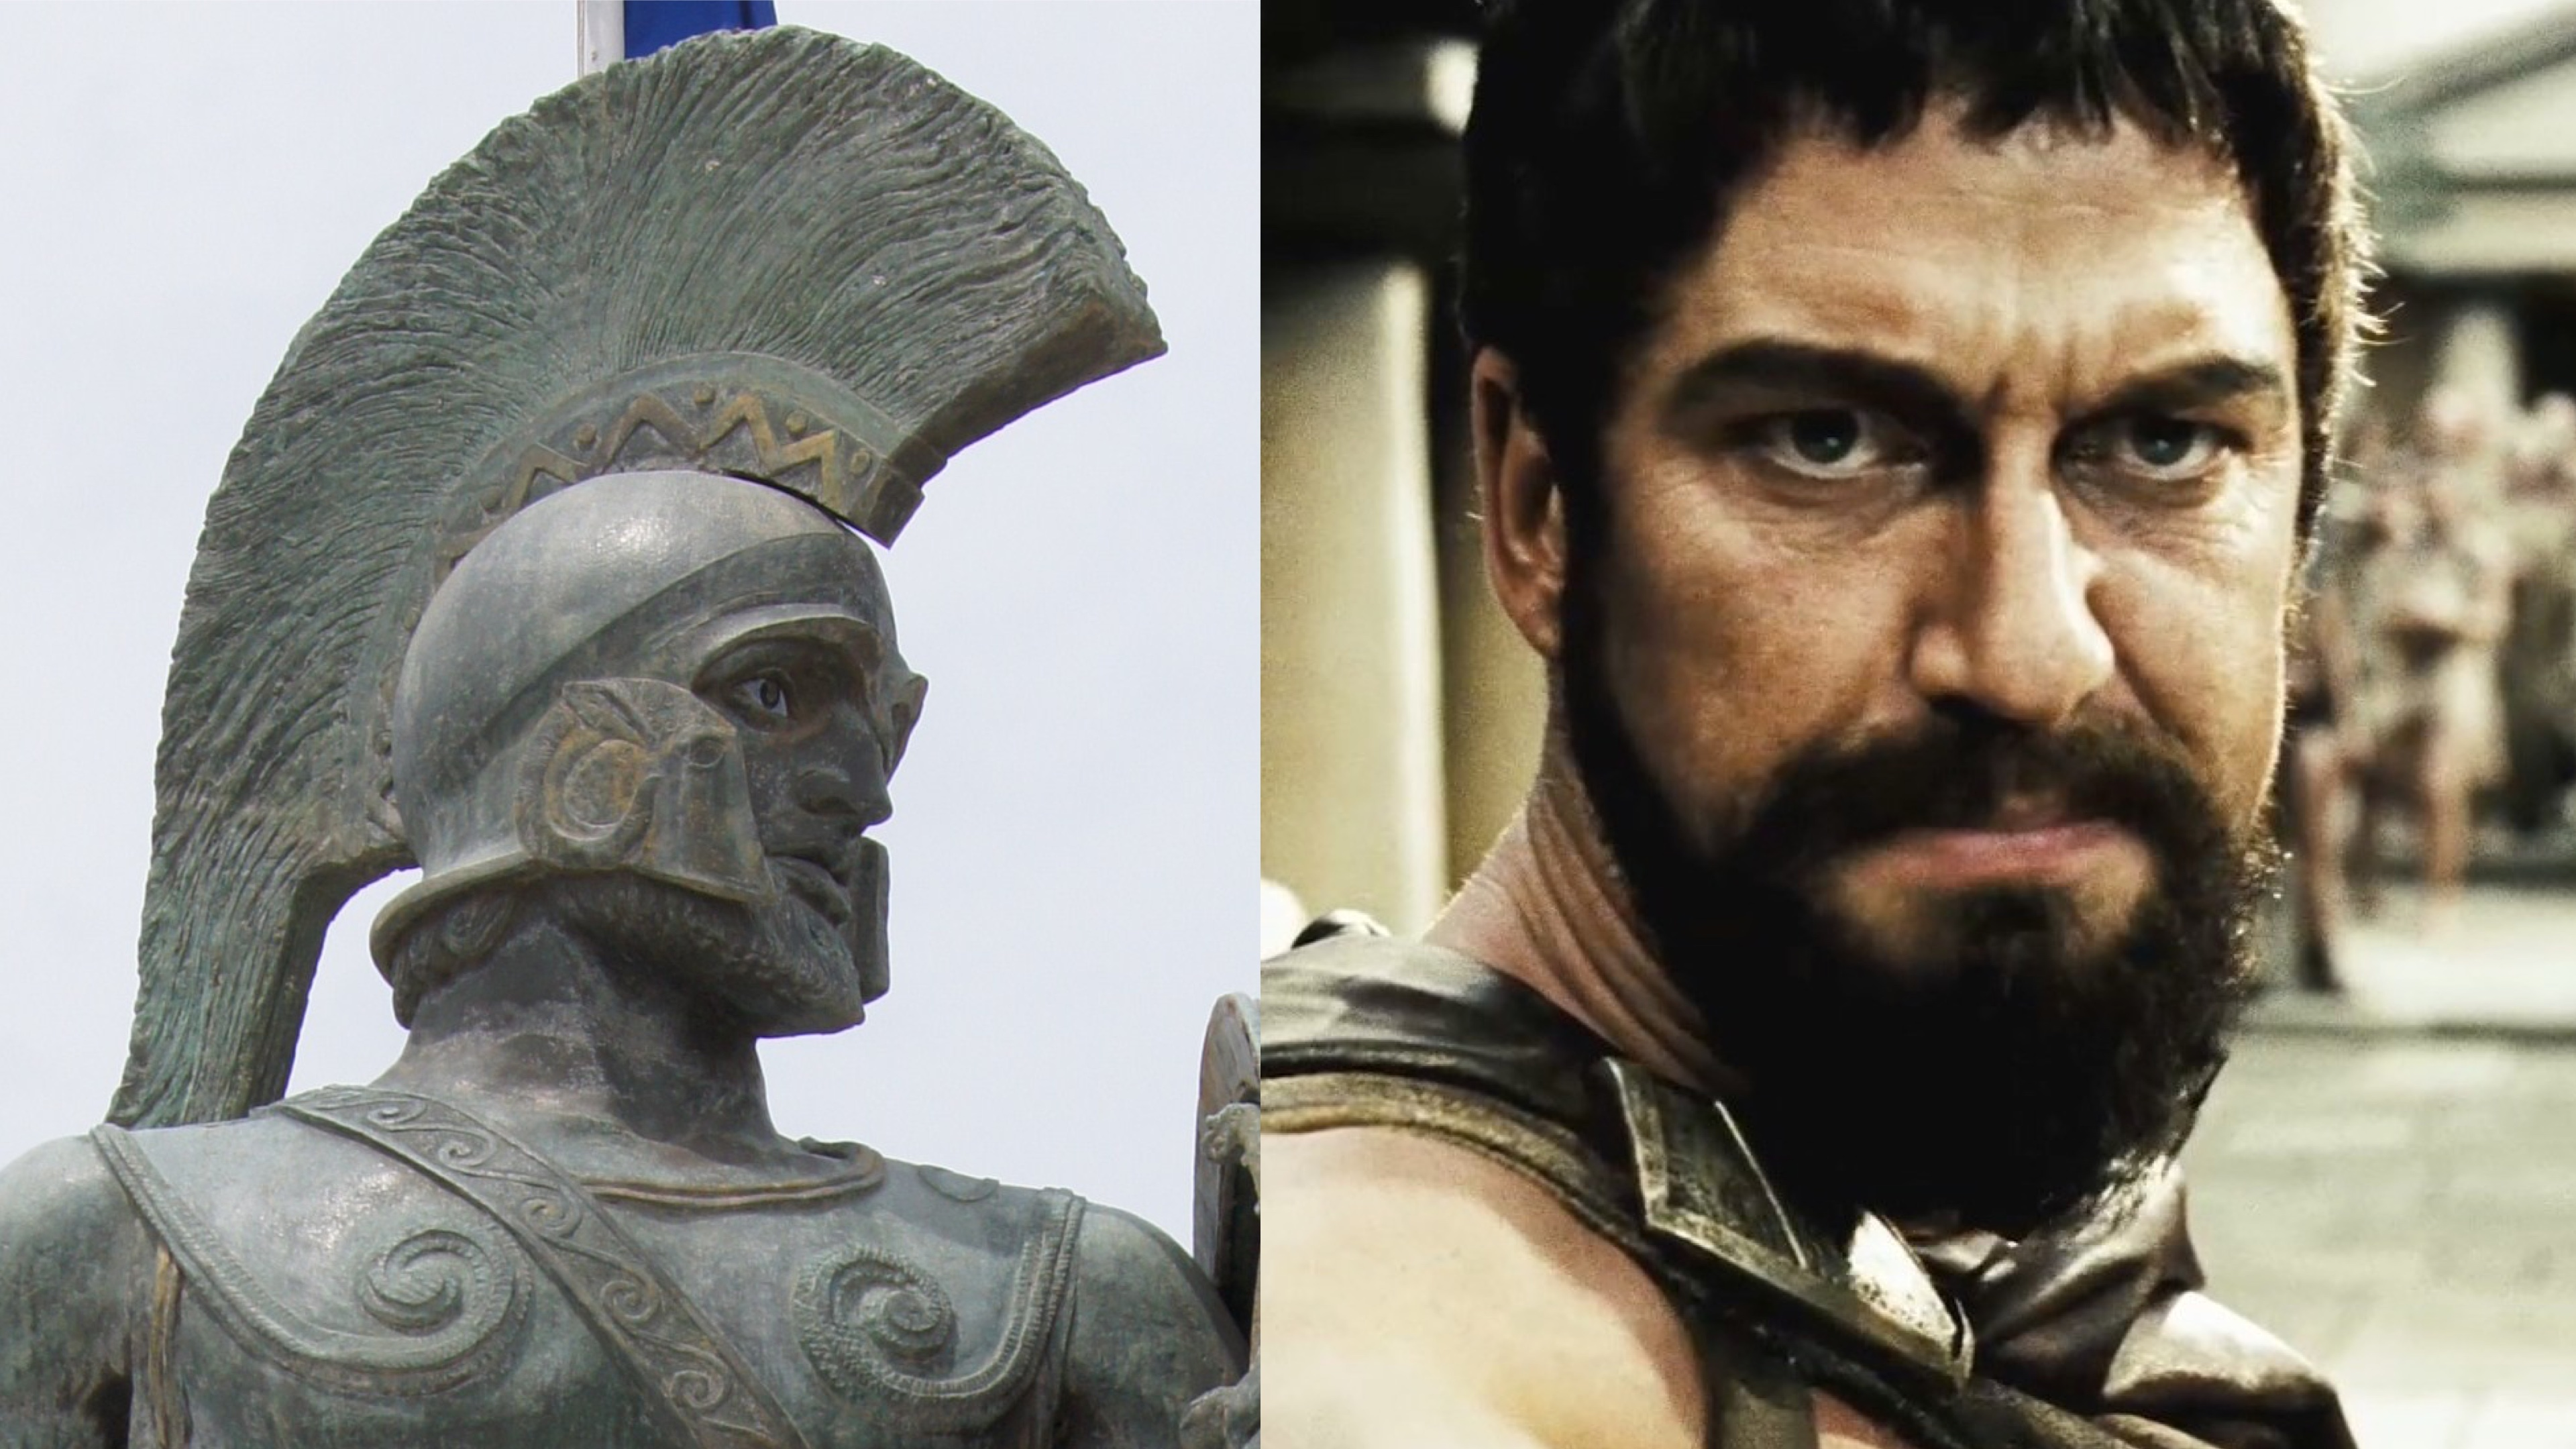 Leonidas statue meets Gerard Butler, who played as him in the movie 300